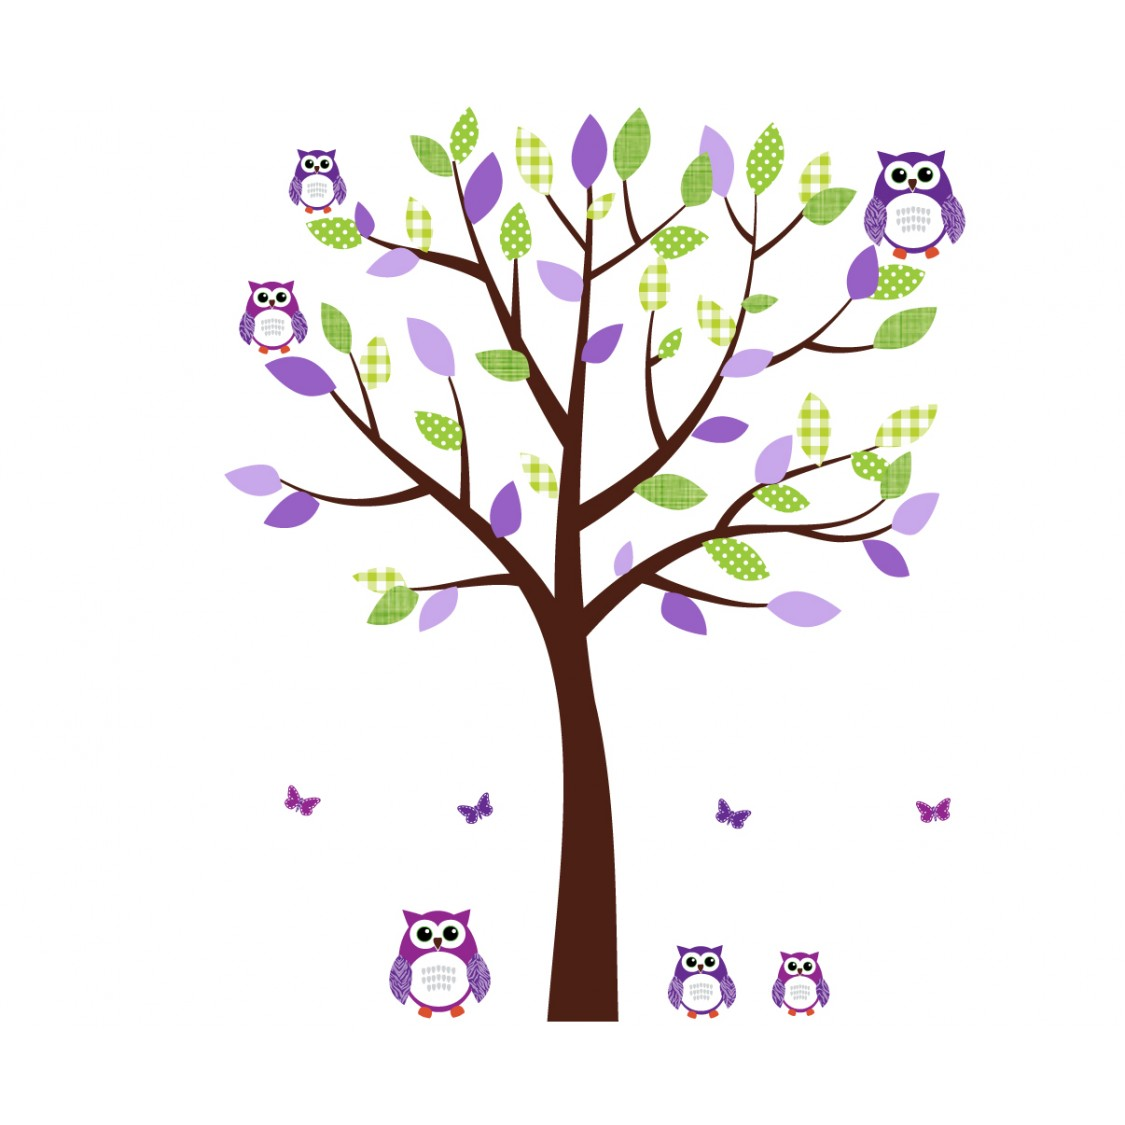 Green and purple clipart.